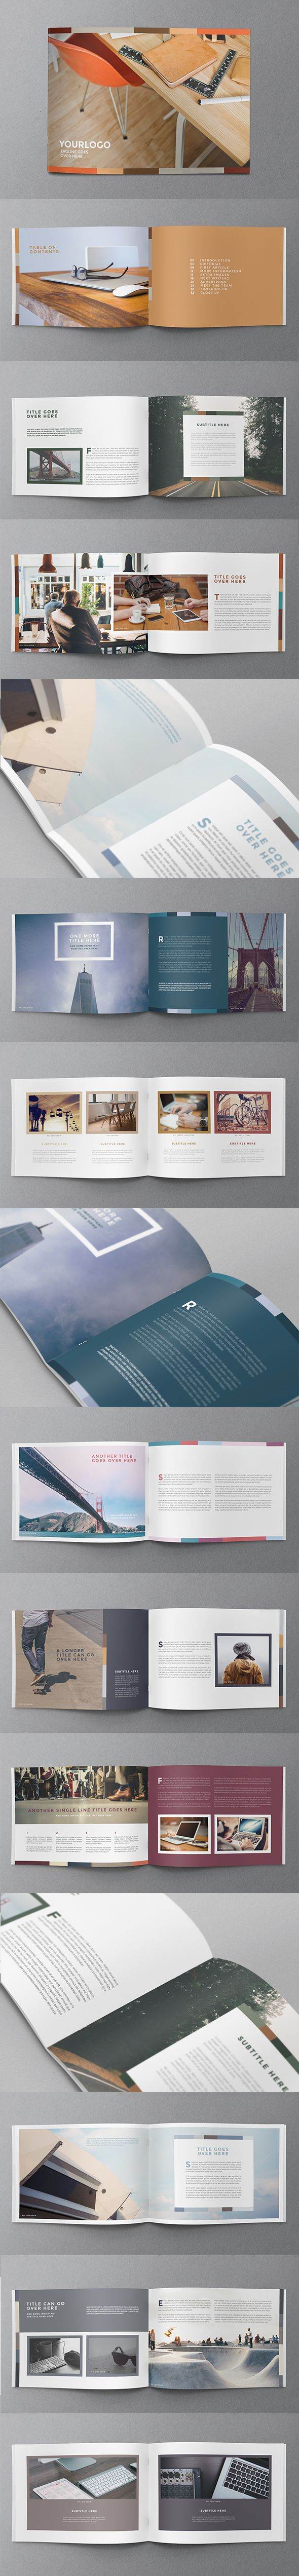 Colorful Minimal Brochure. Download here: http://graphicriver.net/item/colorful-minimal-brochure/11713454?ref=abradesign